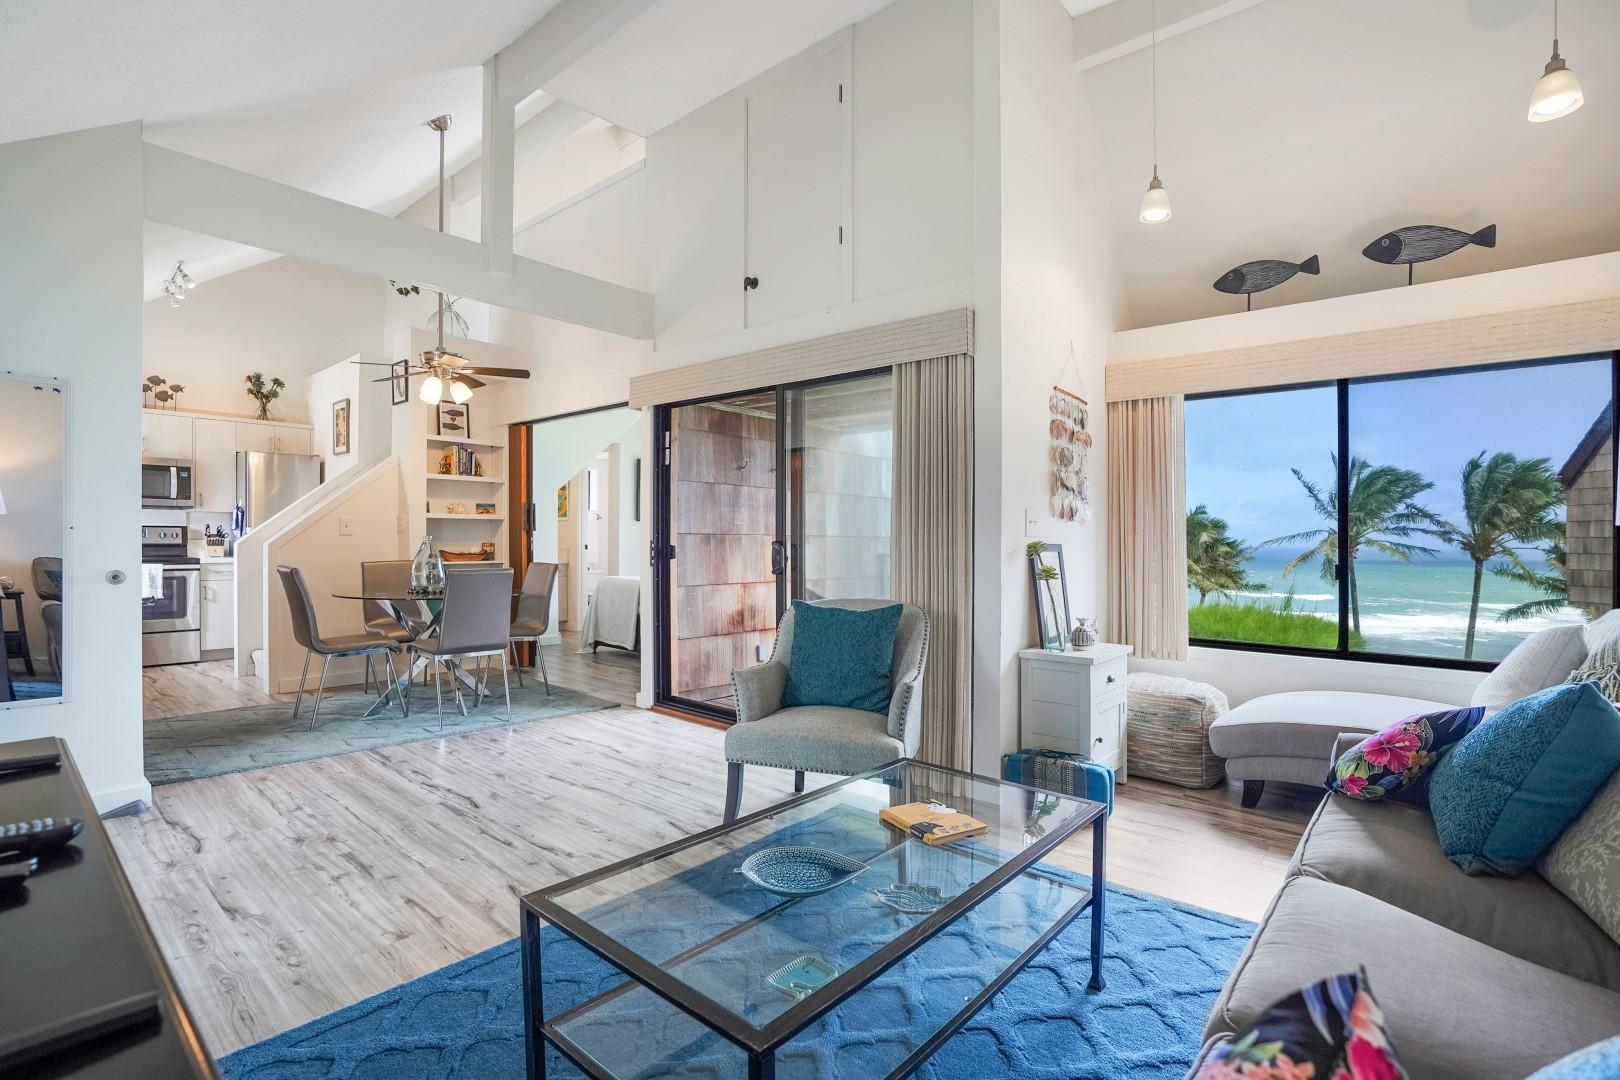 Spacious living area, looking out at the ocean